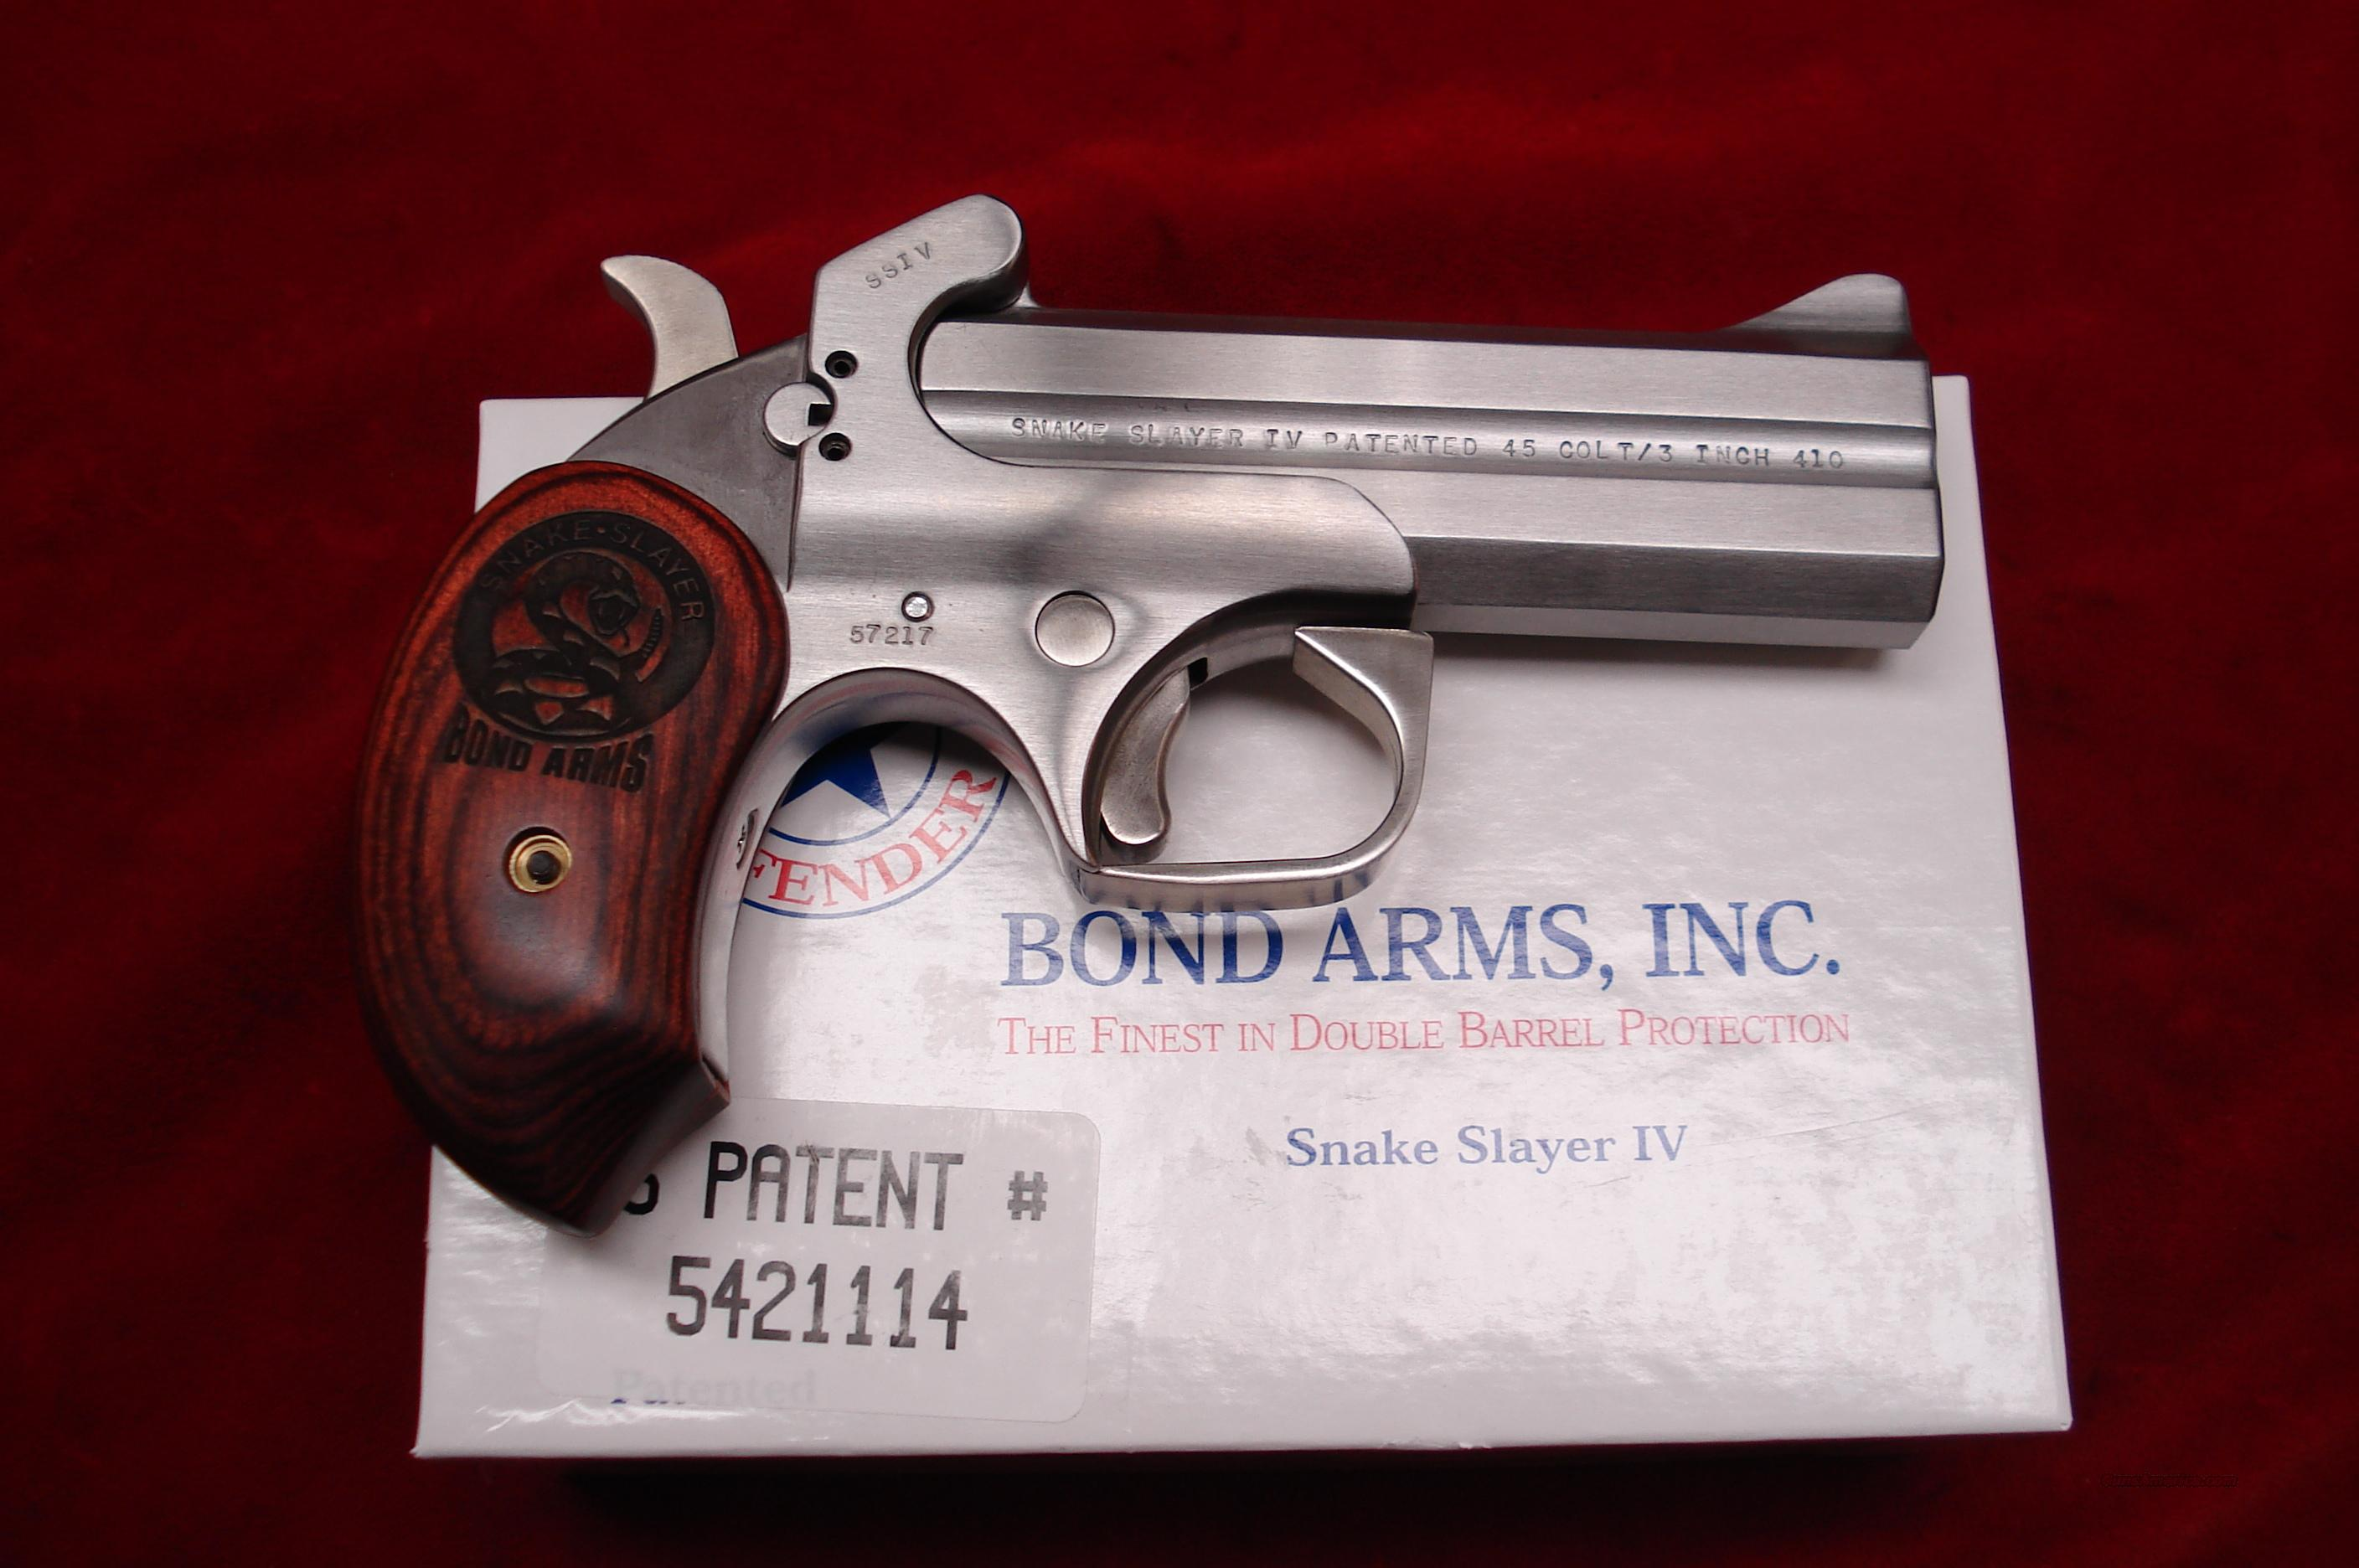 BOND ARMS SNAKE SLAYER IV 410G/45COLT STAINLESS DERRINGER NEW  Guns > Pistols > Bond Derringers